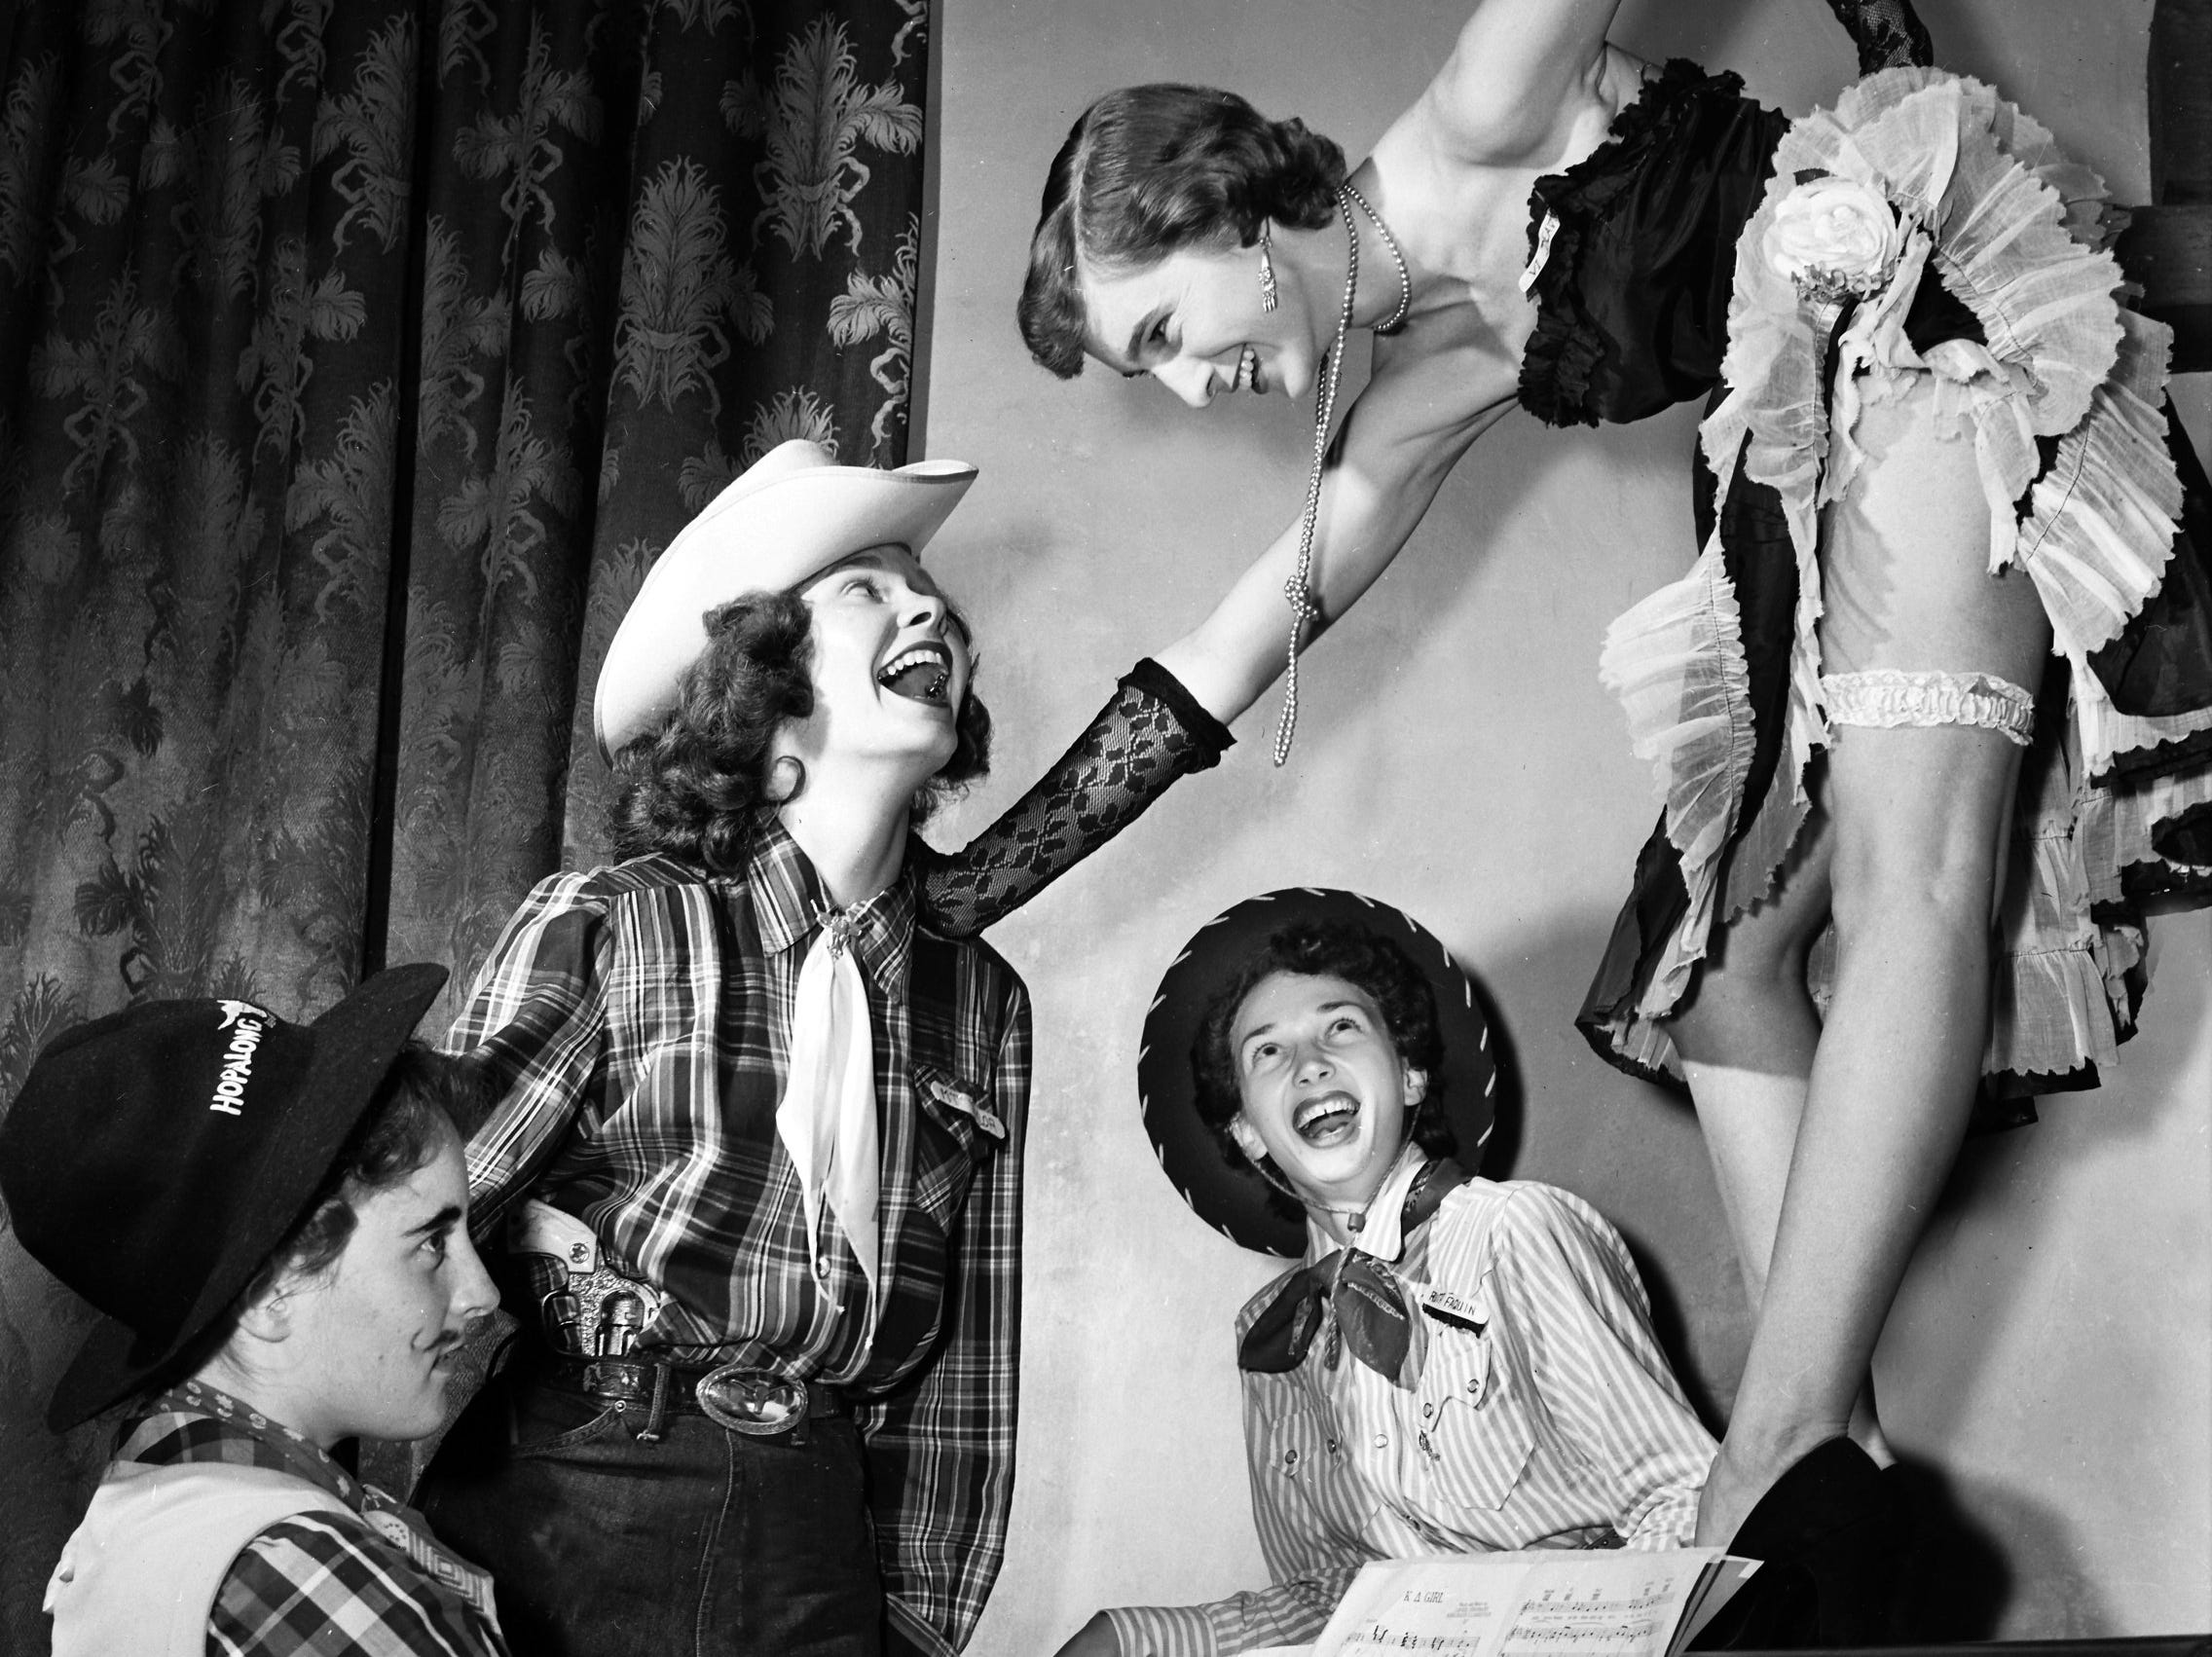 "Can-can girl Viola Deavours of San Antonio, TX leads a trio of rugged cowpokes (Left to Right), Helen Coke of Caruthersville, MO; Mary Taylor of Winston-Salem, NC and Ruth Faquin of 186 Mignon in a rousing chorus from a popular Western ditty.  The scene occurred at Kappa Delta Sorority's ""Pink Garter"" Western-type cafe  during sorority rush at Southwestern College on 27 Sep 1951."